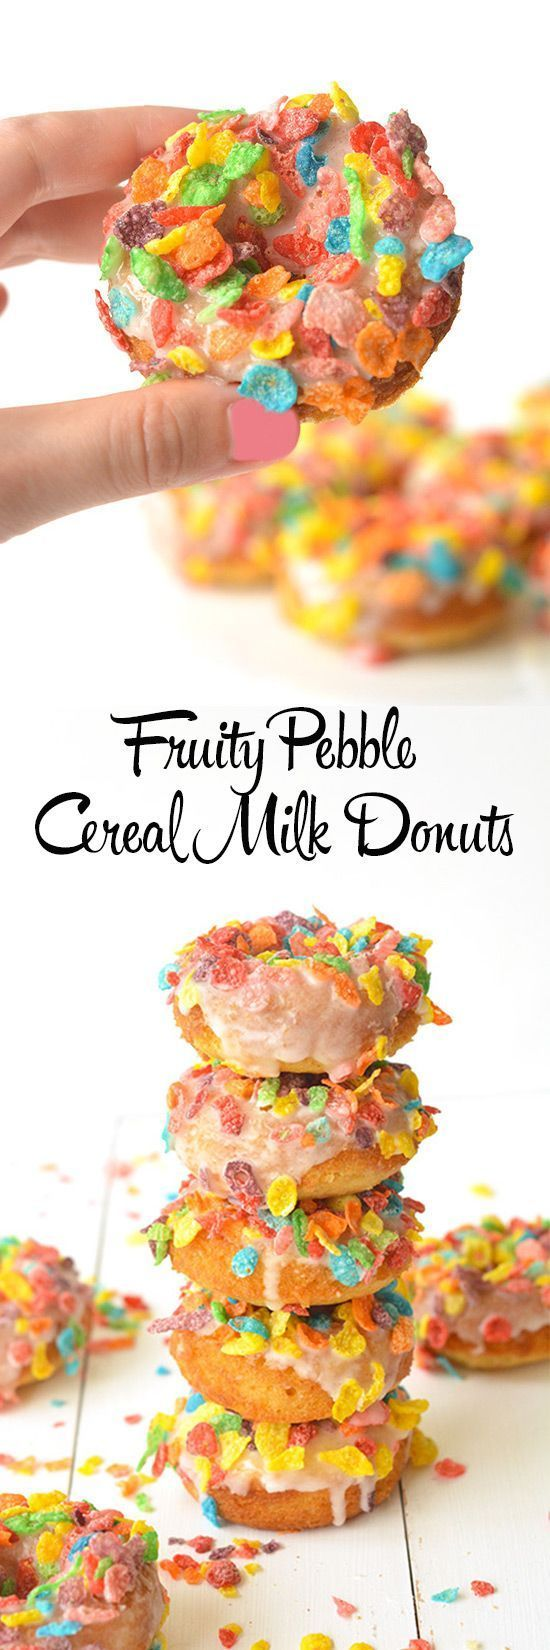 Fruity Pebble Cereal Milk Donuts | Sweetest Menu